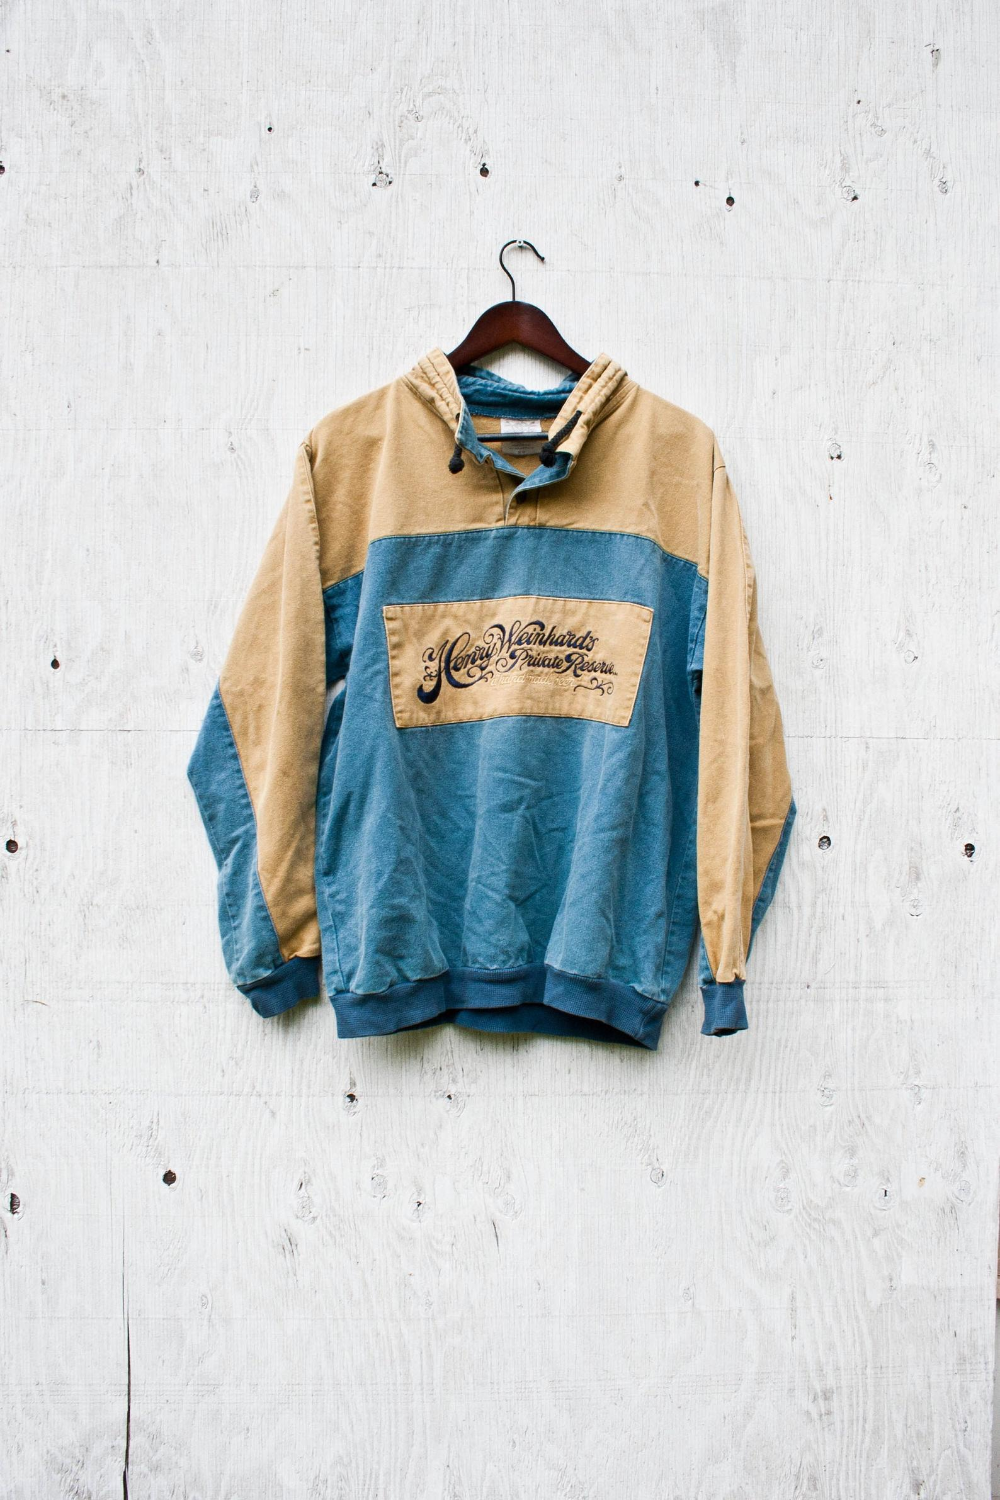 Henry Weinhard's Private Reserve Pullover Medium